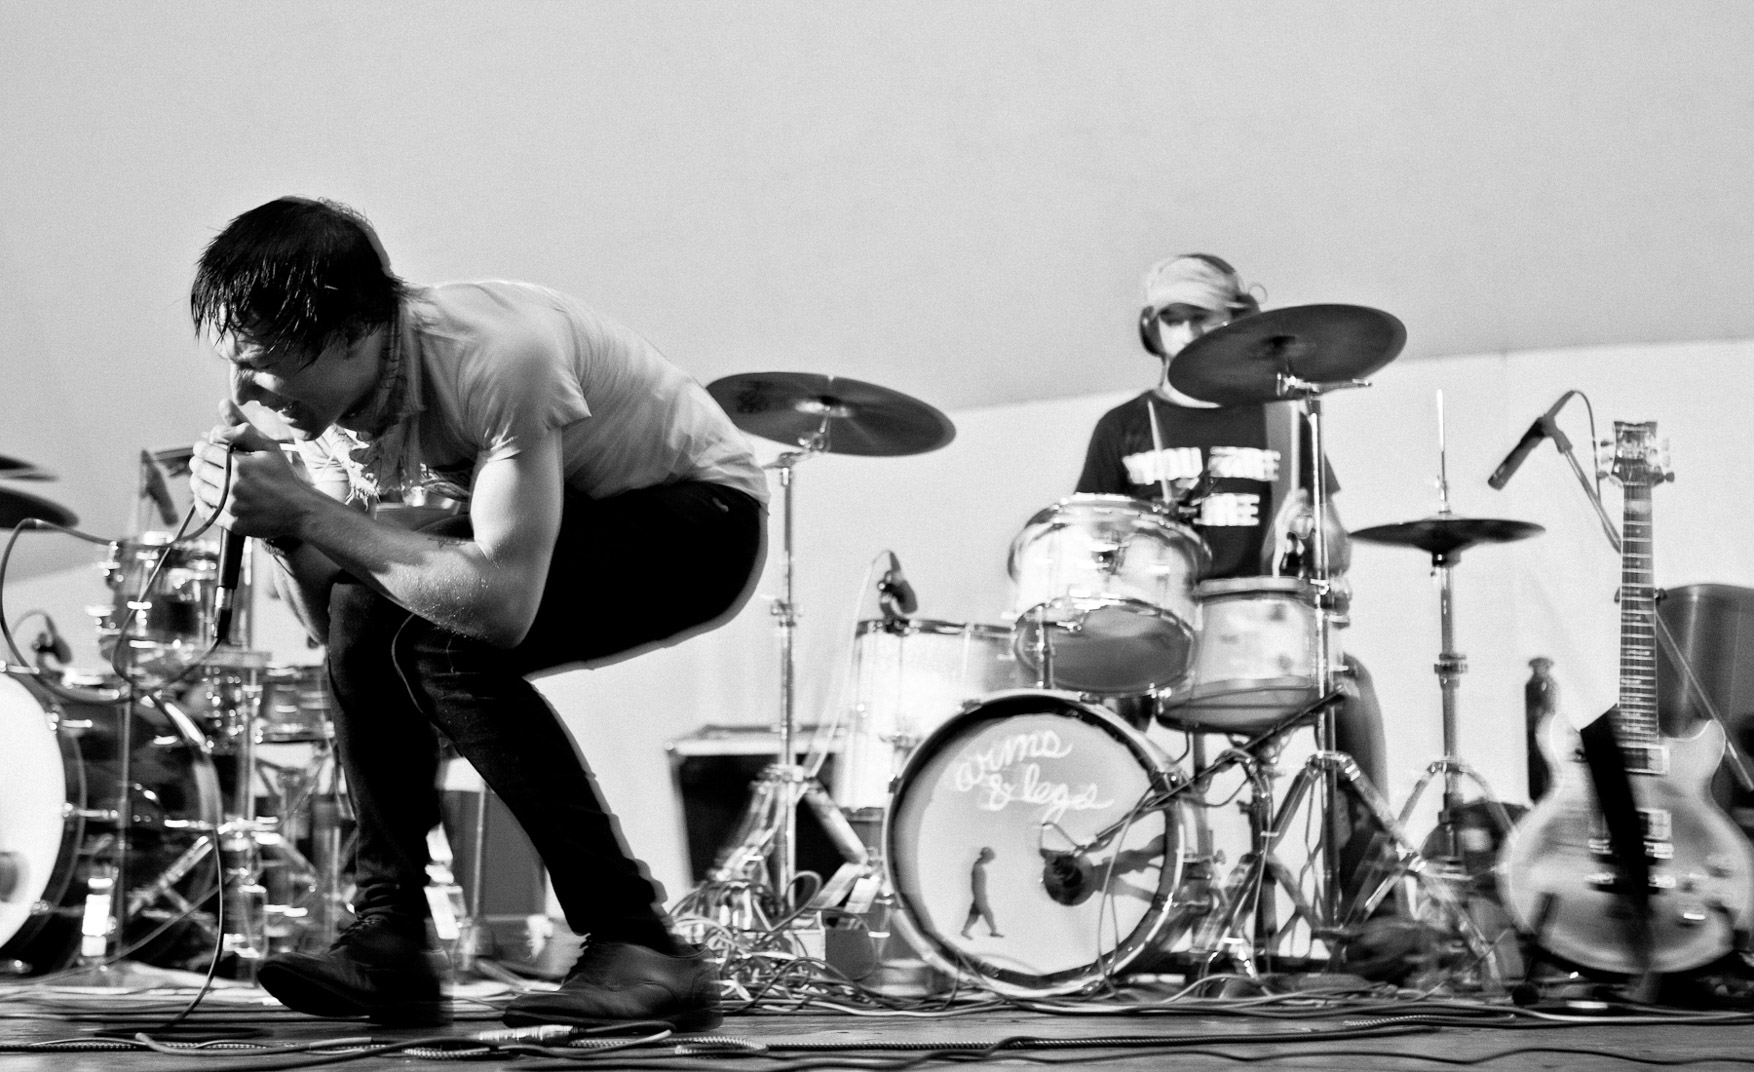 Black and white photograph of man on stage singing while kneeling down with drummer behind him